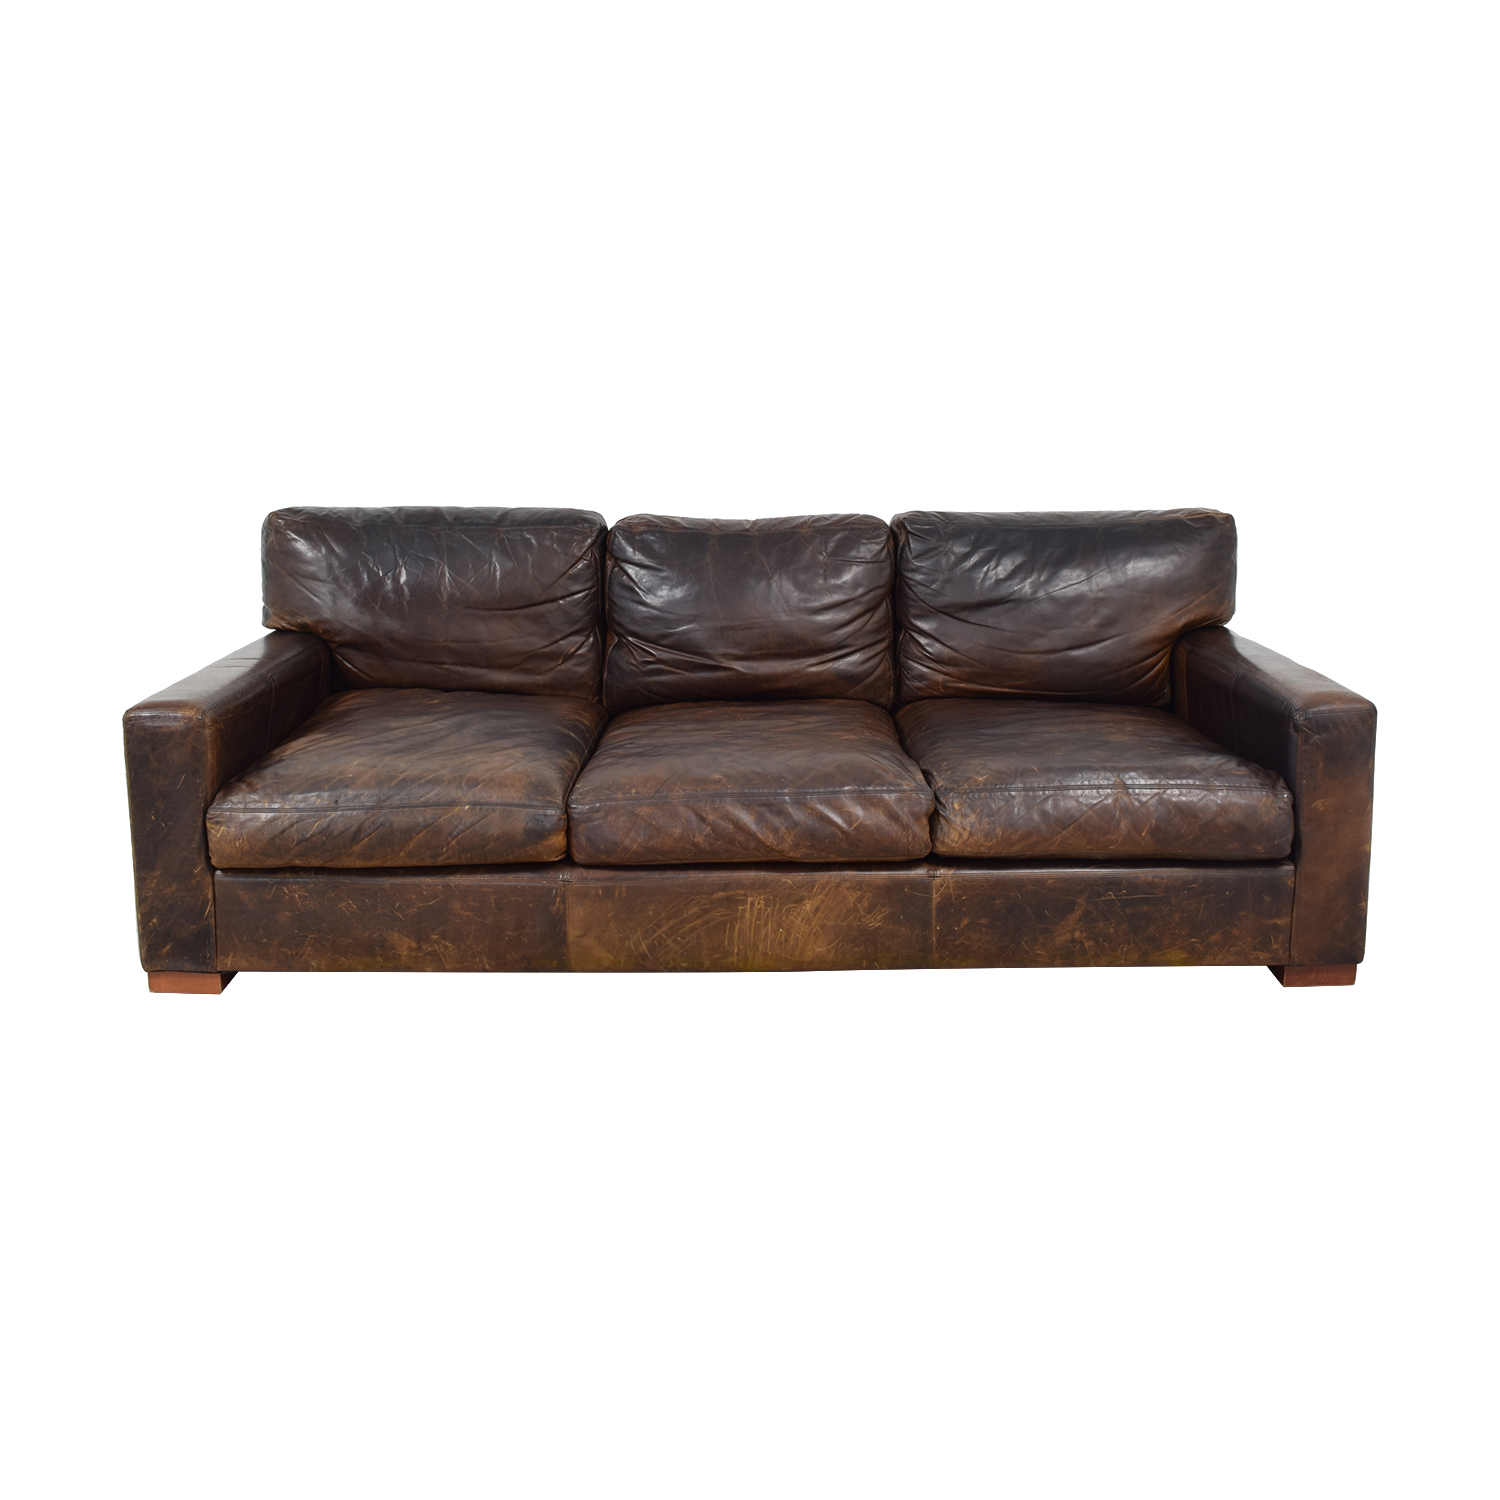 Restoration Hardware Restoration Hardware Original Lancaster Leather Sofa on sale